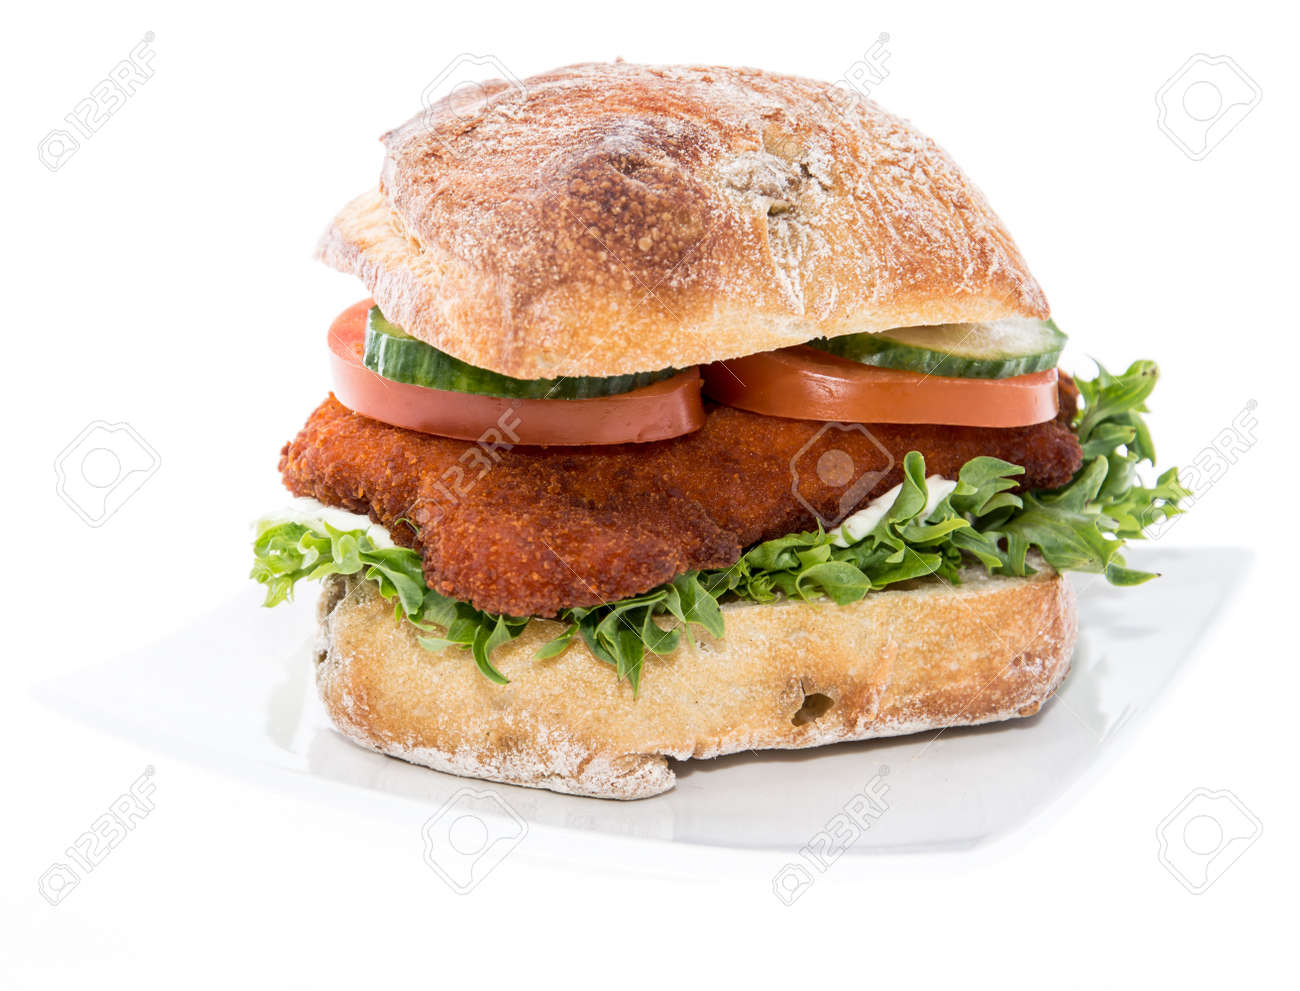 Chicken Schnitzel On A Roll Isolated On White Background Stock Photo Picture And Royalty Free Image Image 17977103